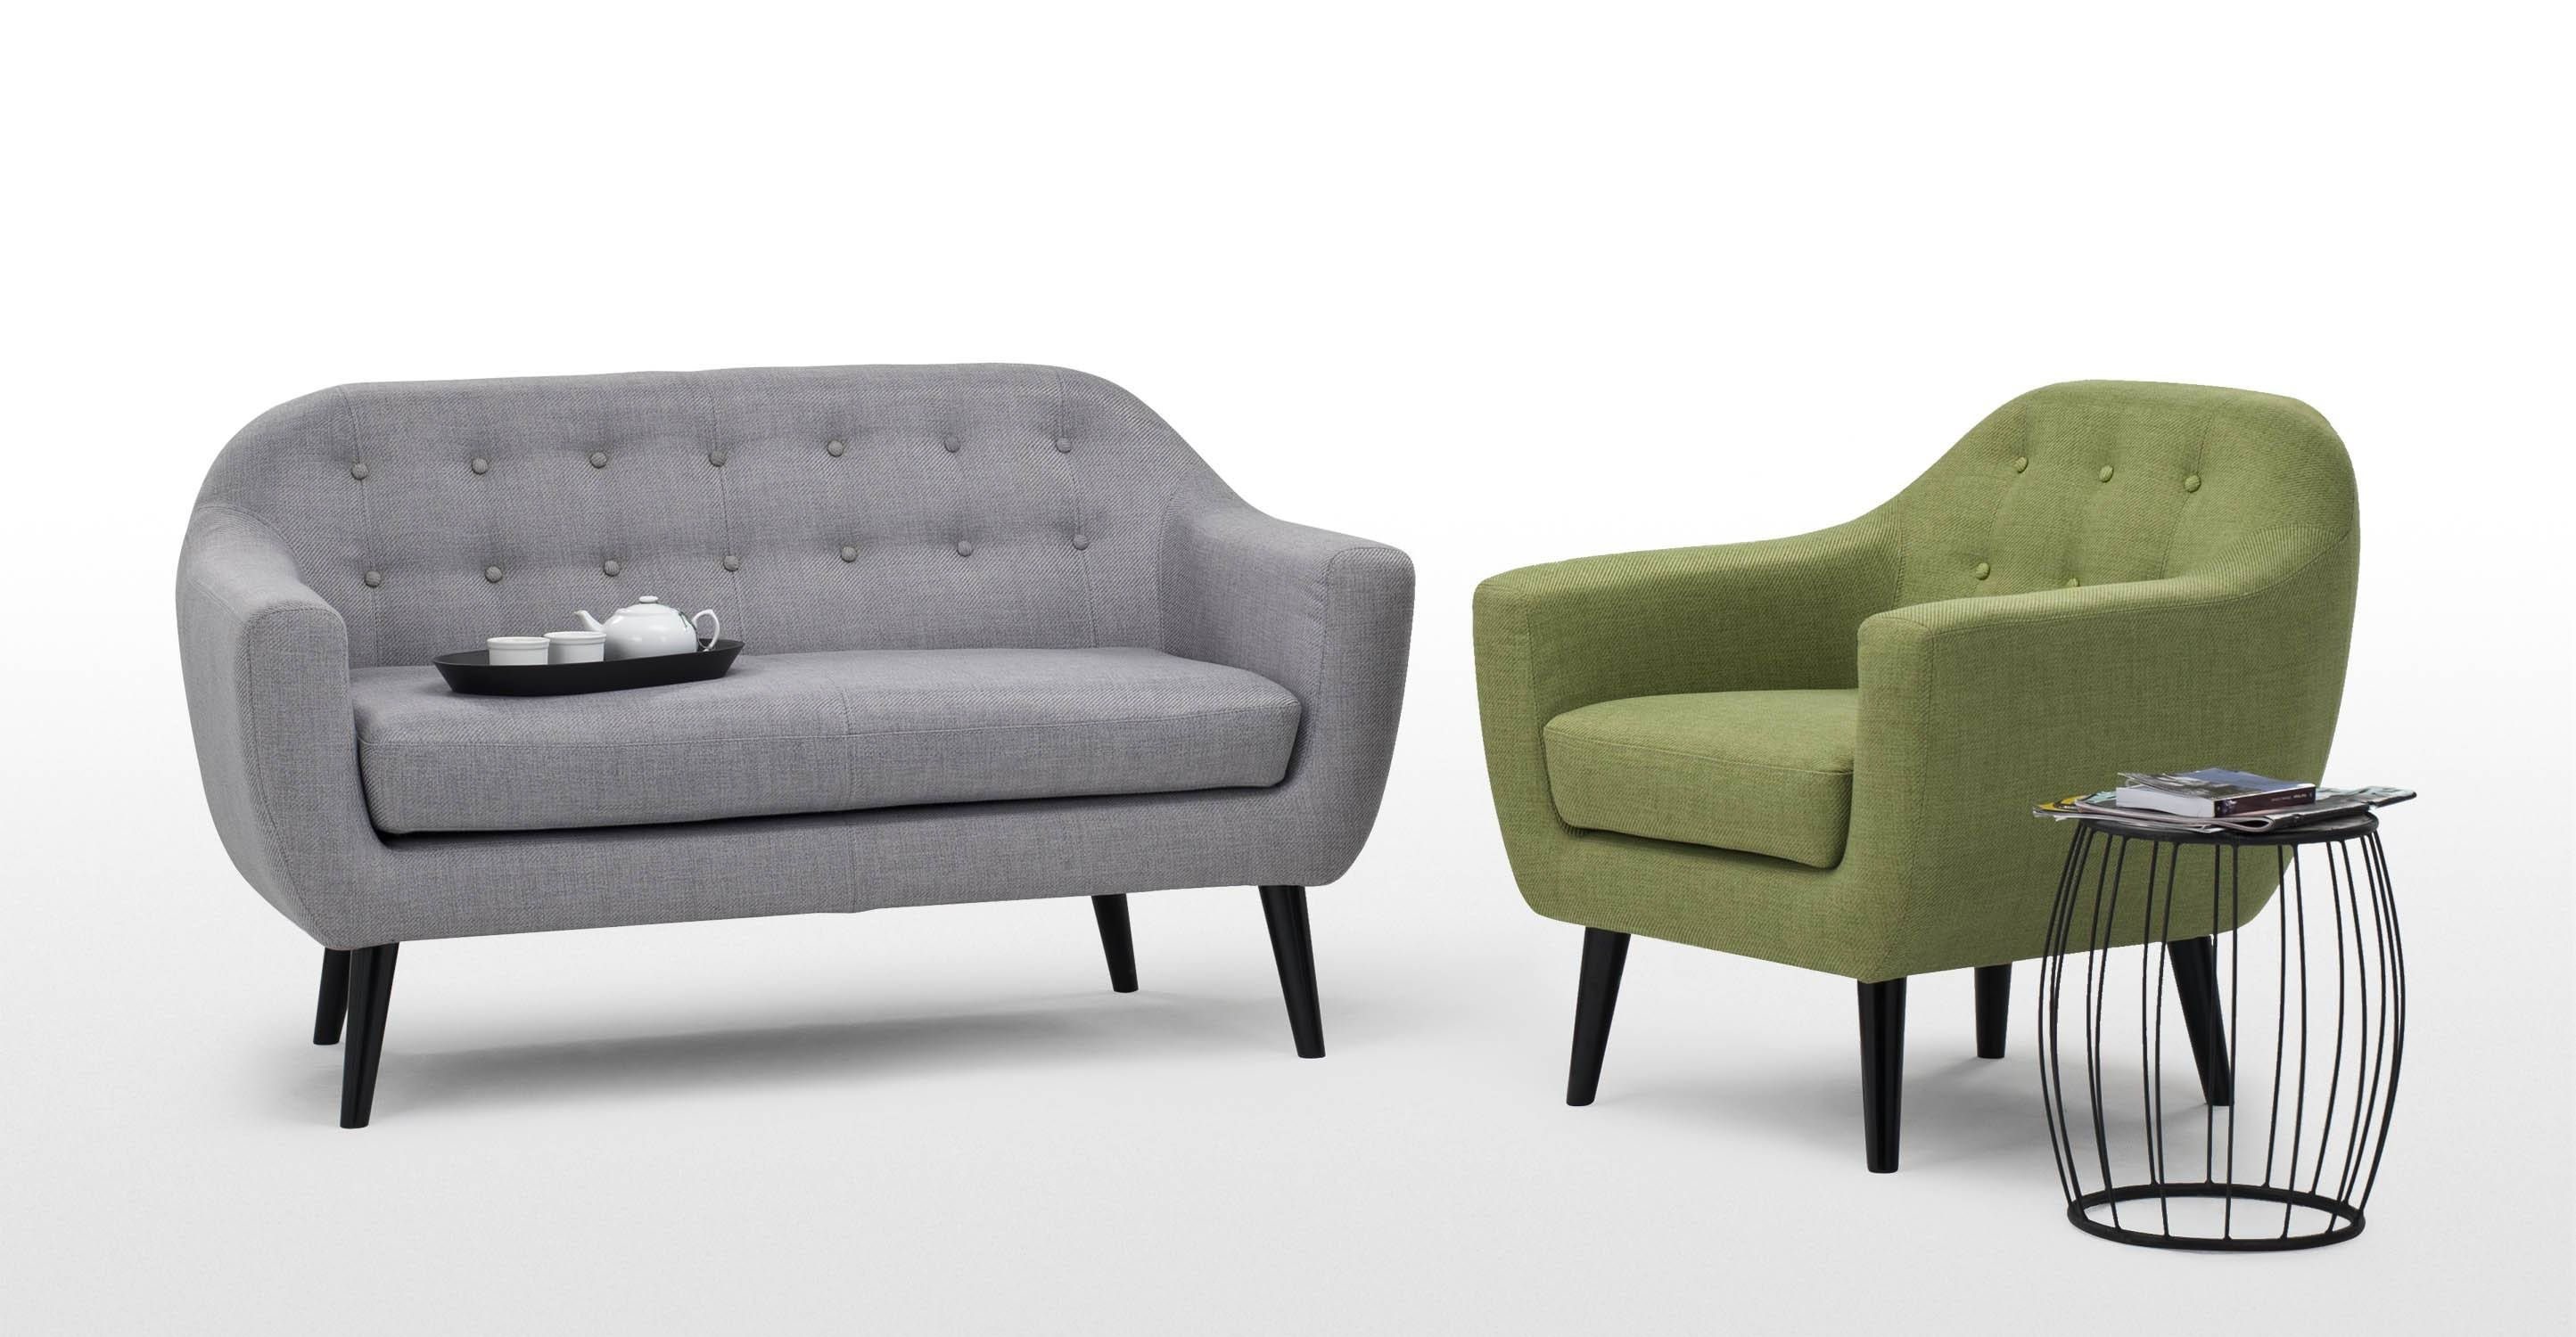 Sofas Center : Seaterfafas Uk Small Uk2 Beds Covers2 With Chaise2 regarding Small 2 Seater Sofas (Image 24 of 30)